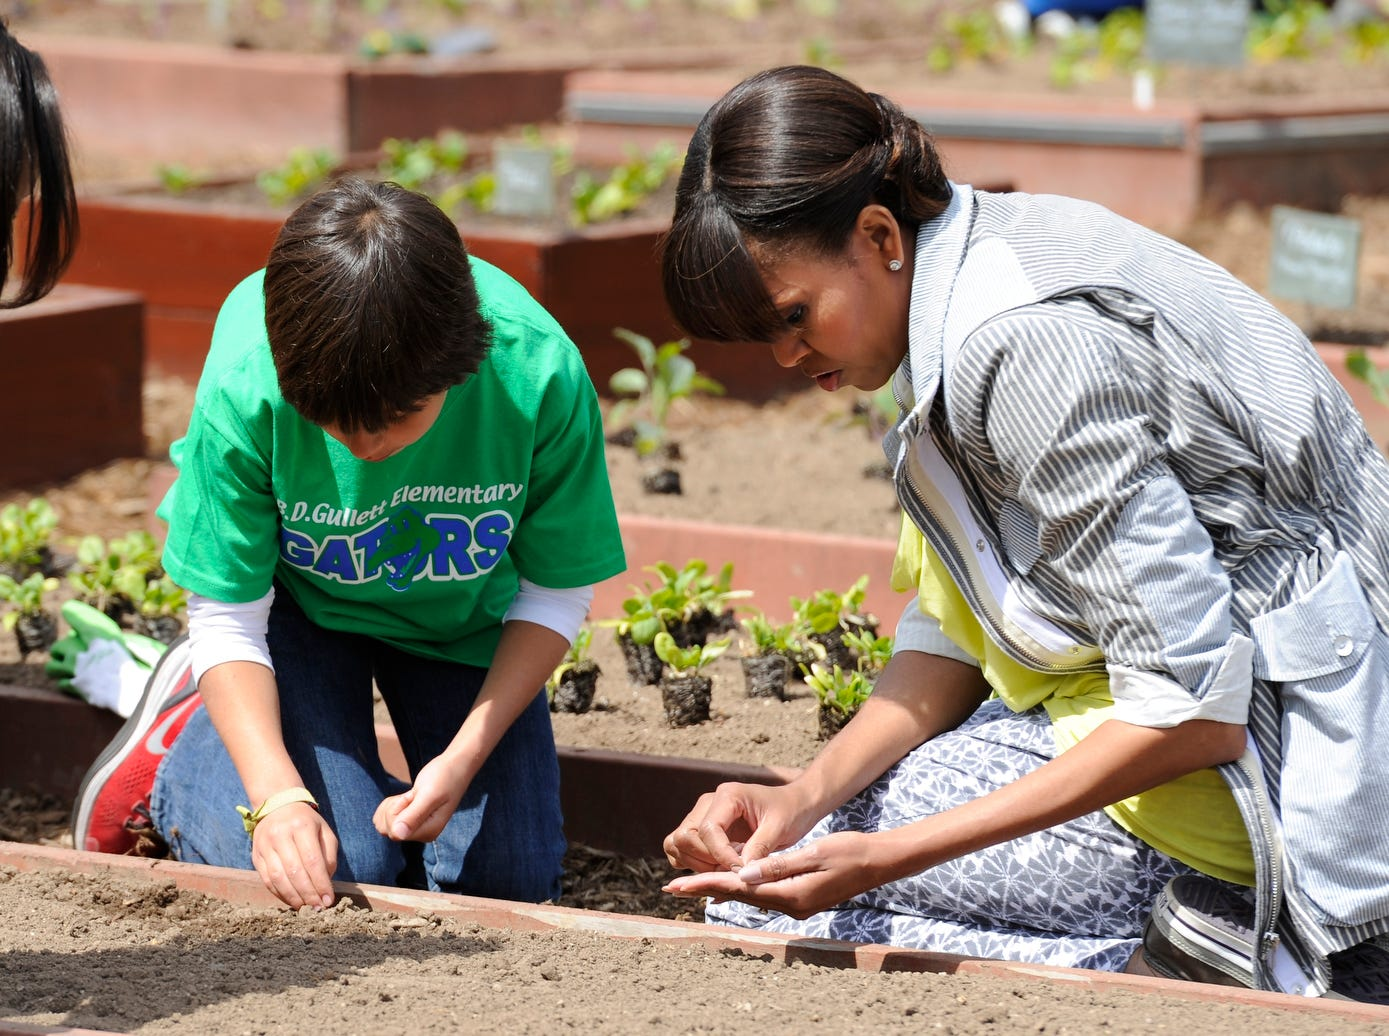 4/4/13 1:27:41 PM -- Washington, DC, U.S.A  -- First Lady Michelle Obama plants the White House garden with Emilio Vega from Benjamin D. Gullett Elementary School in Bradenton, Fla.   Photo by H. Darr Beiser, USA TODAY staff  ORG XMIT: HB 43251 VT WHITE HOUSE G 4/4/20 (Via OlyDrop)